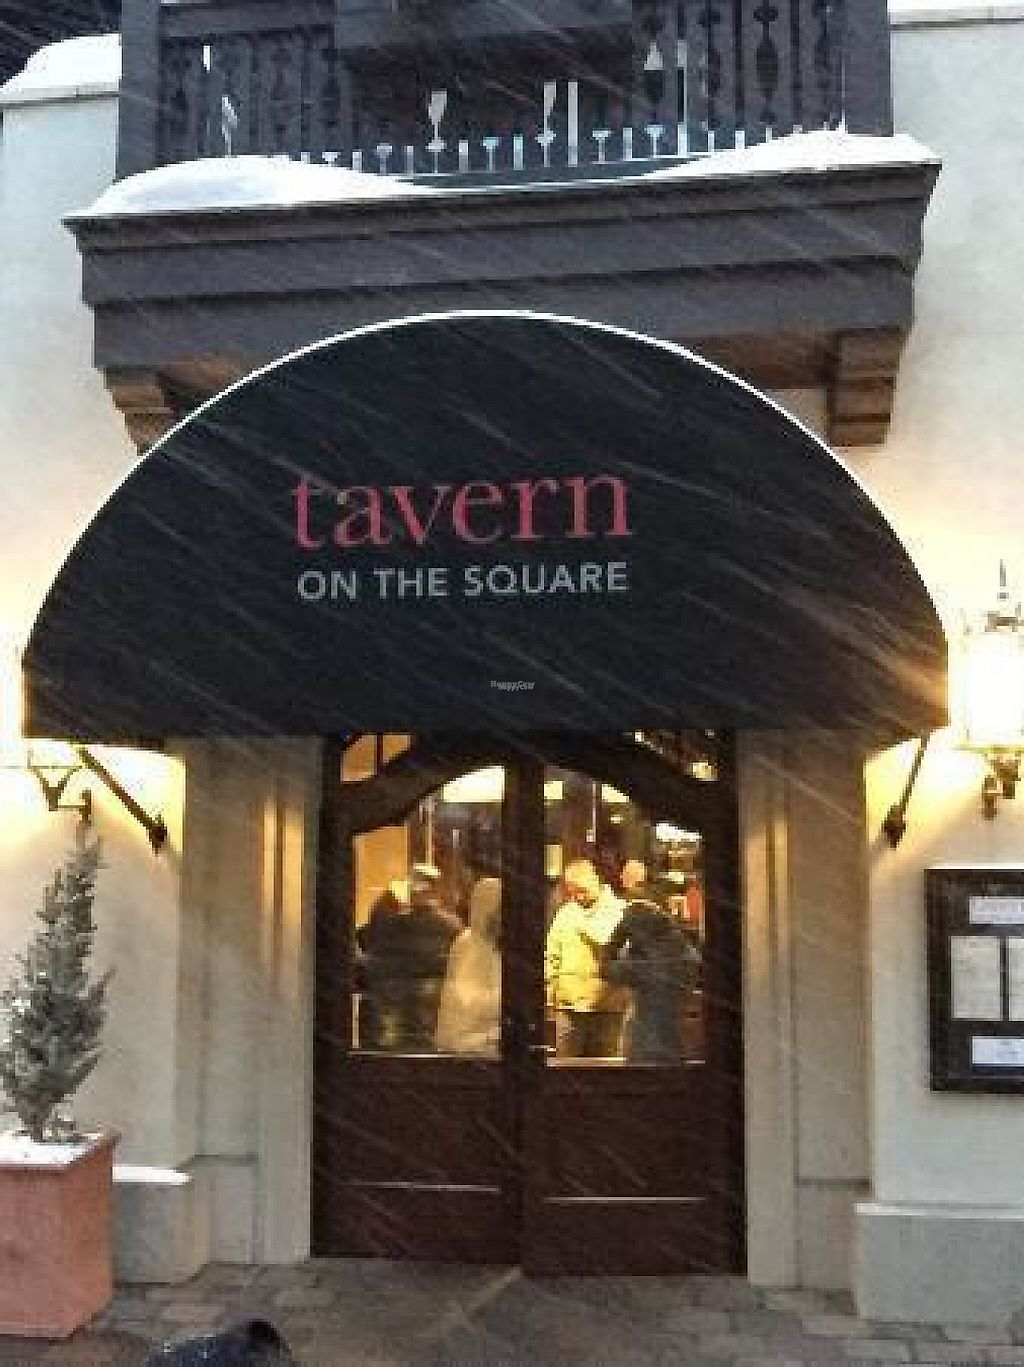 """Photo of The Tavern on The Square  by <a href=""""/members/profile/community"""">community</a> <br/>The Tavern on The Square <br/> January 31, 2017  - <a href='/contact/abuse/image/86314/219721'>Report</a>"""